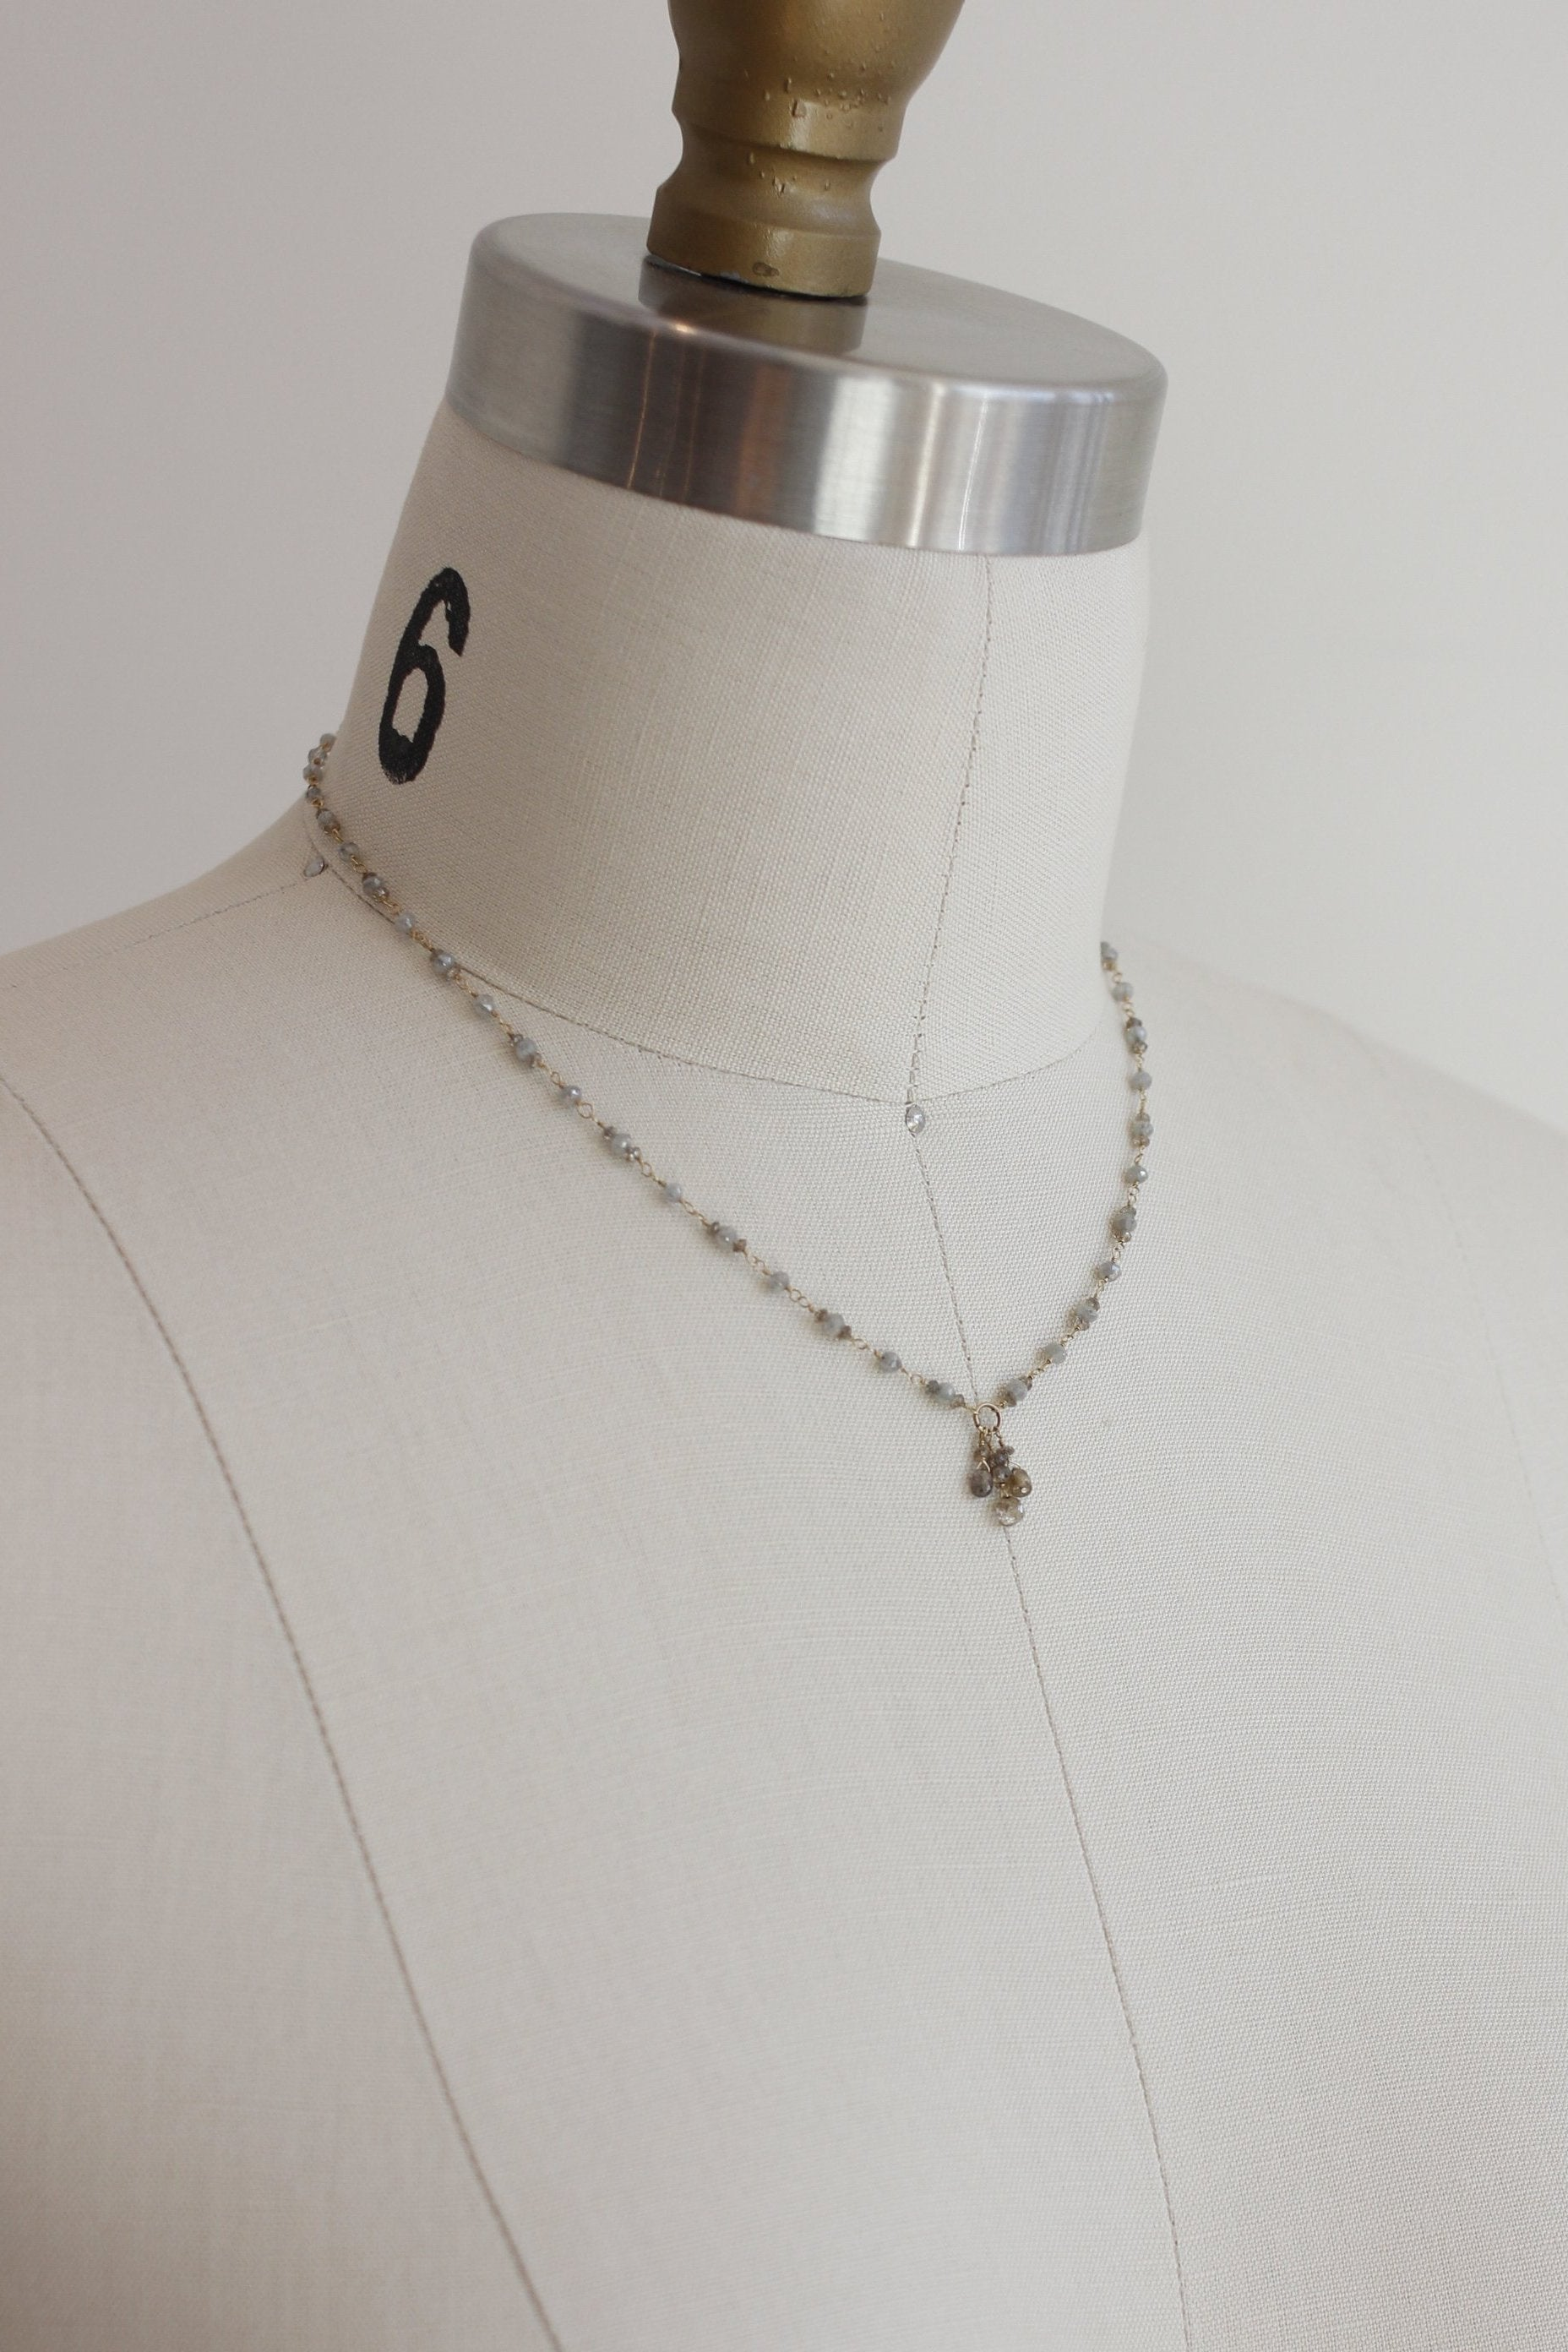 Dawn Bryfogle diamond necklace with briolette pendant